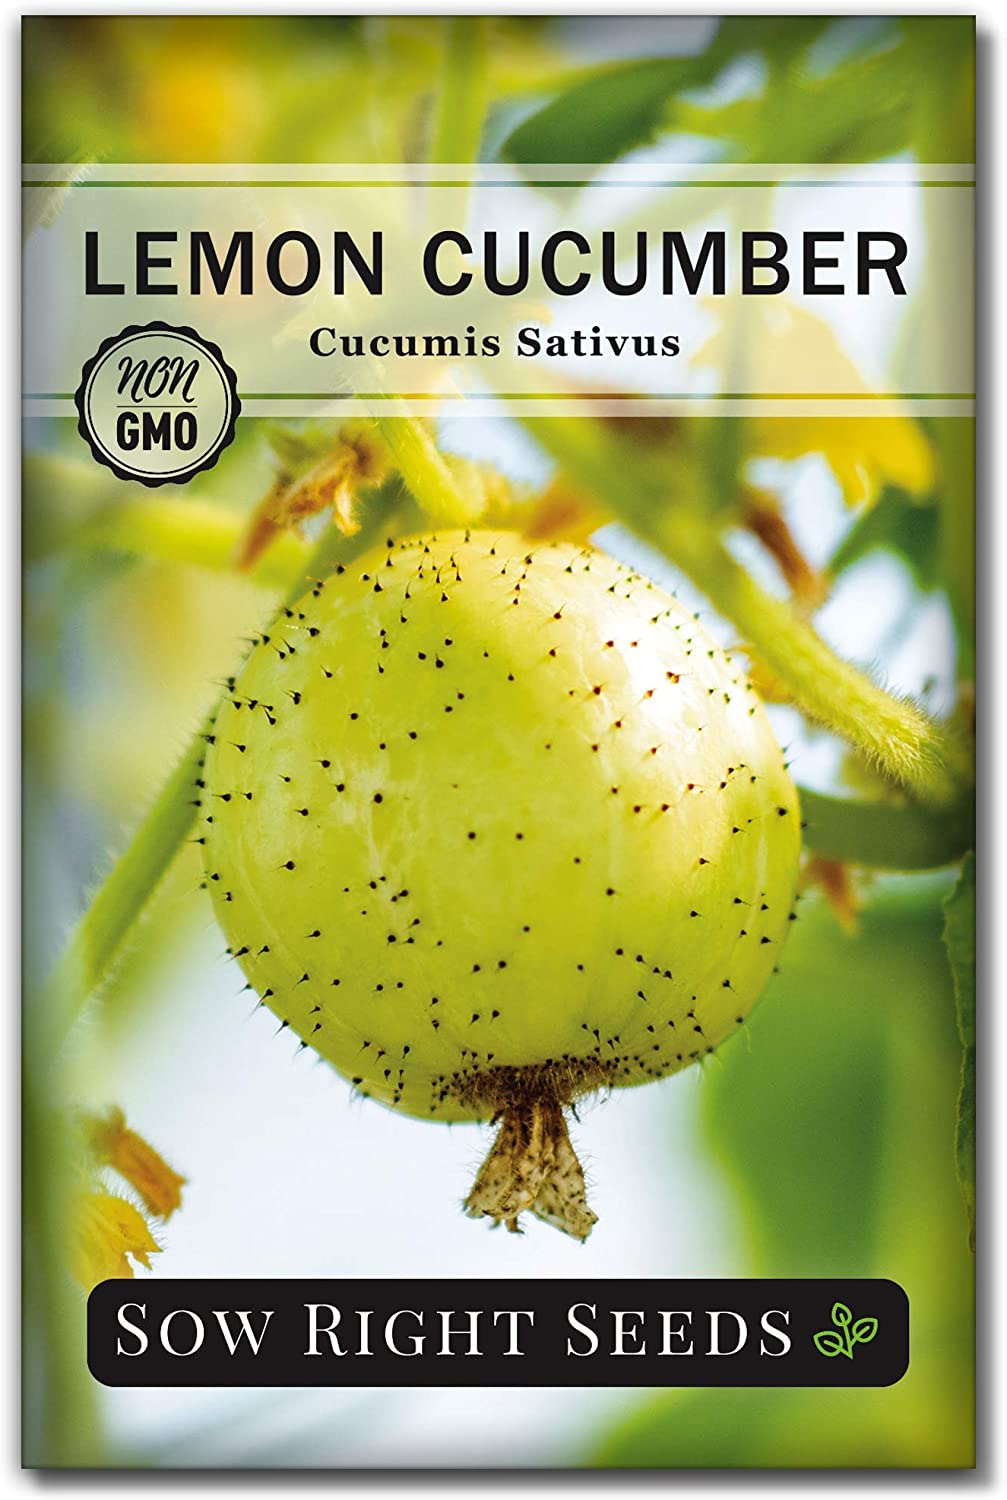 Sow Right Seeds - Lemon Cucumber Seeds for Planting - Non-GMO Heirloom Seeds with Instructions to Plant and Grow a Home Vegetable Garden, Great Gardening Gift (1)